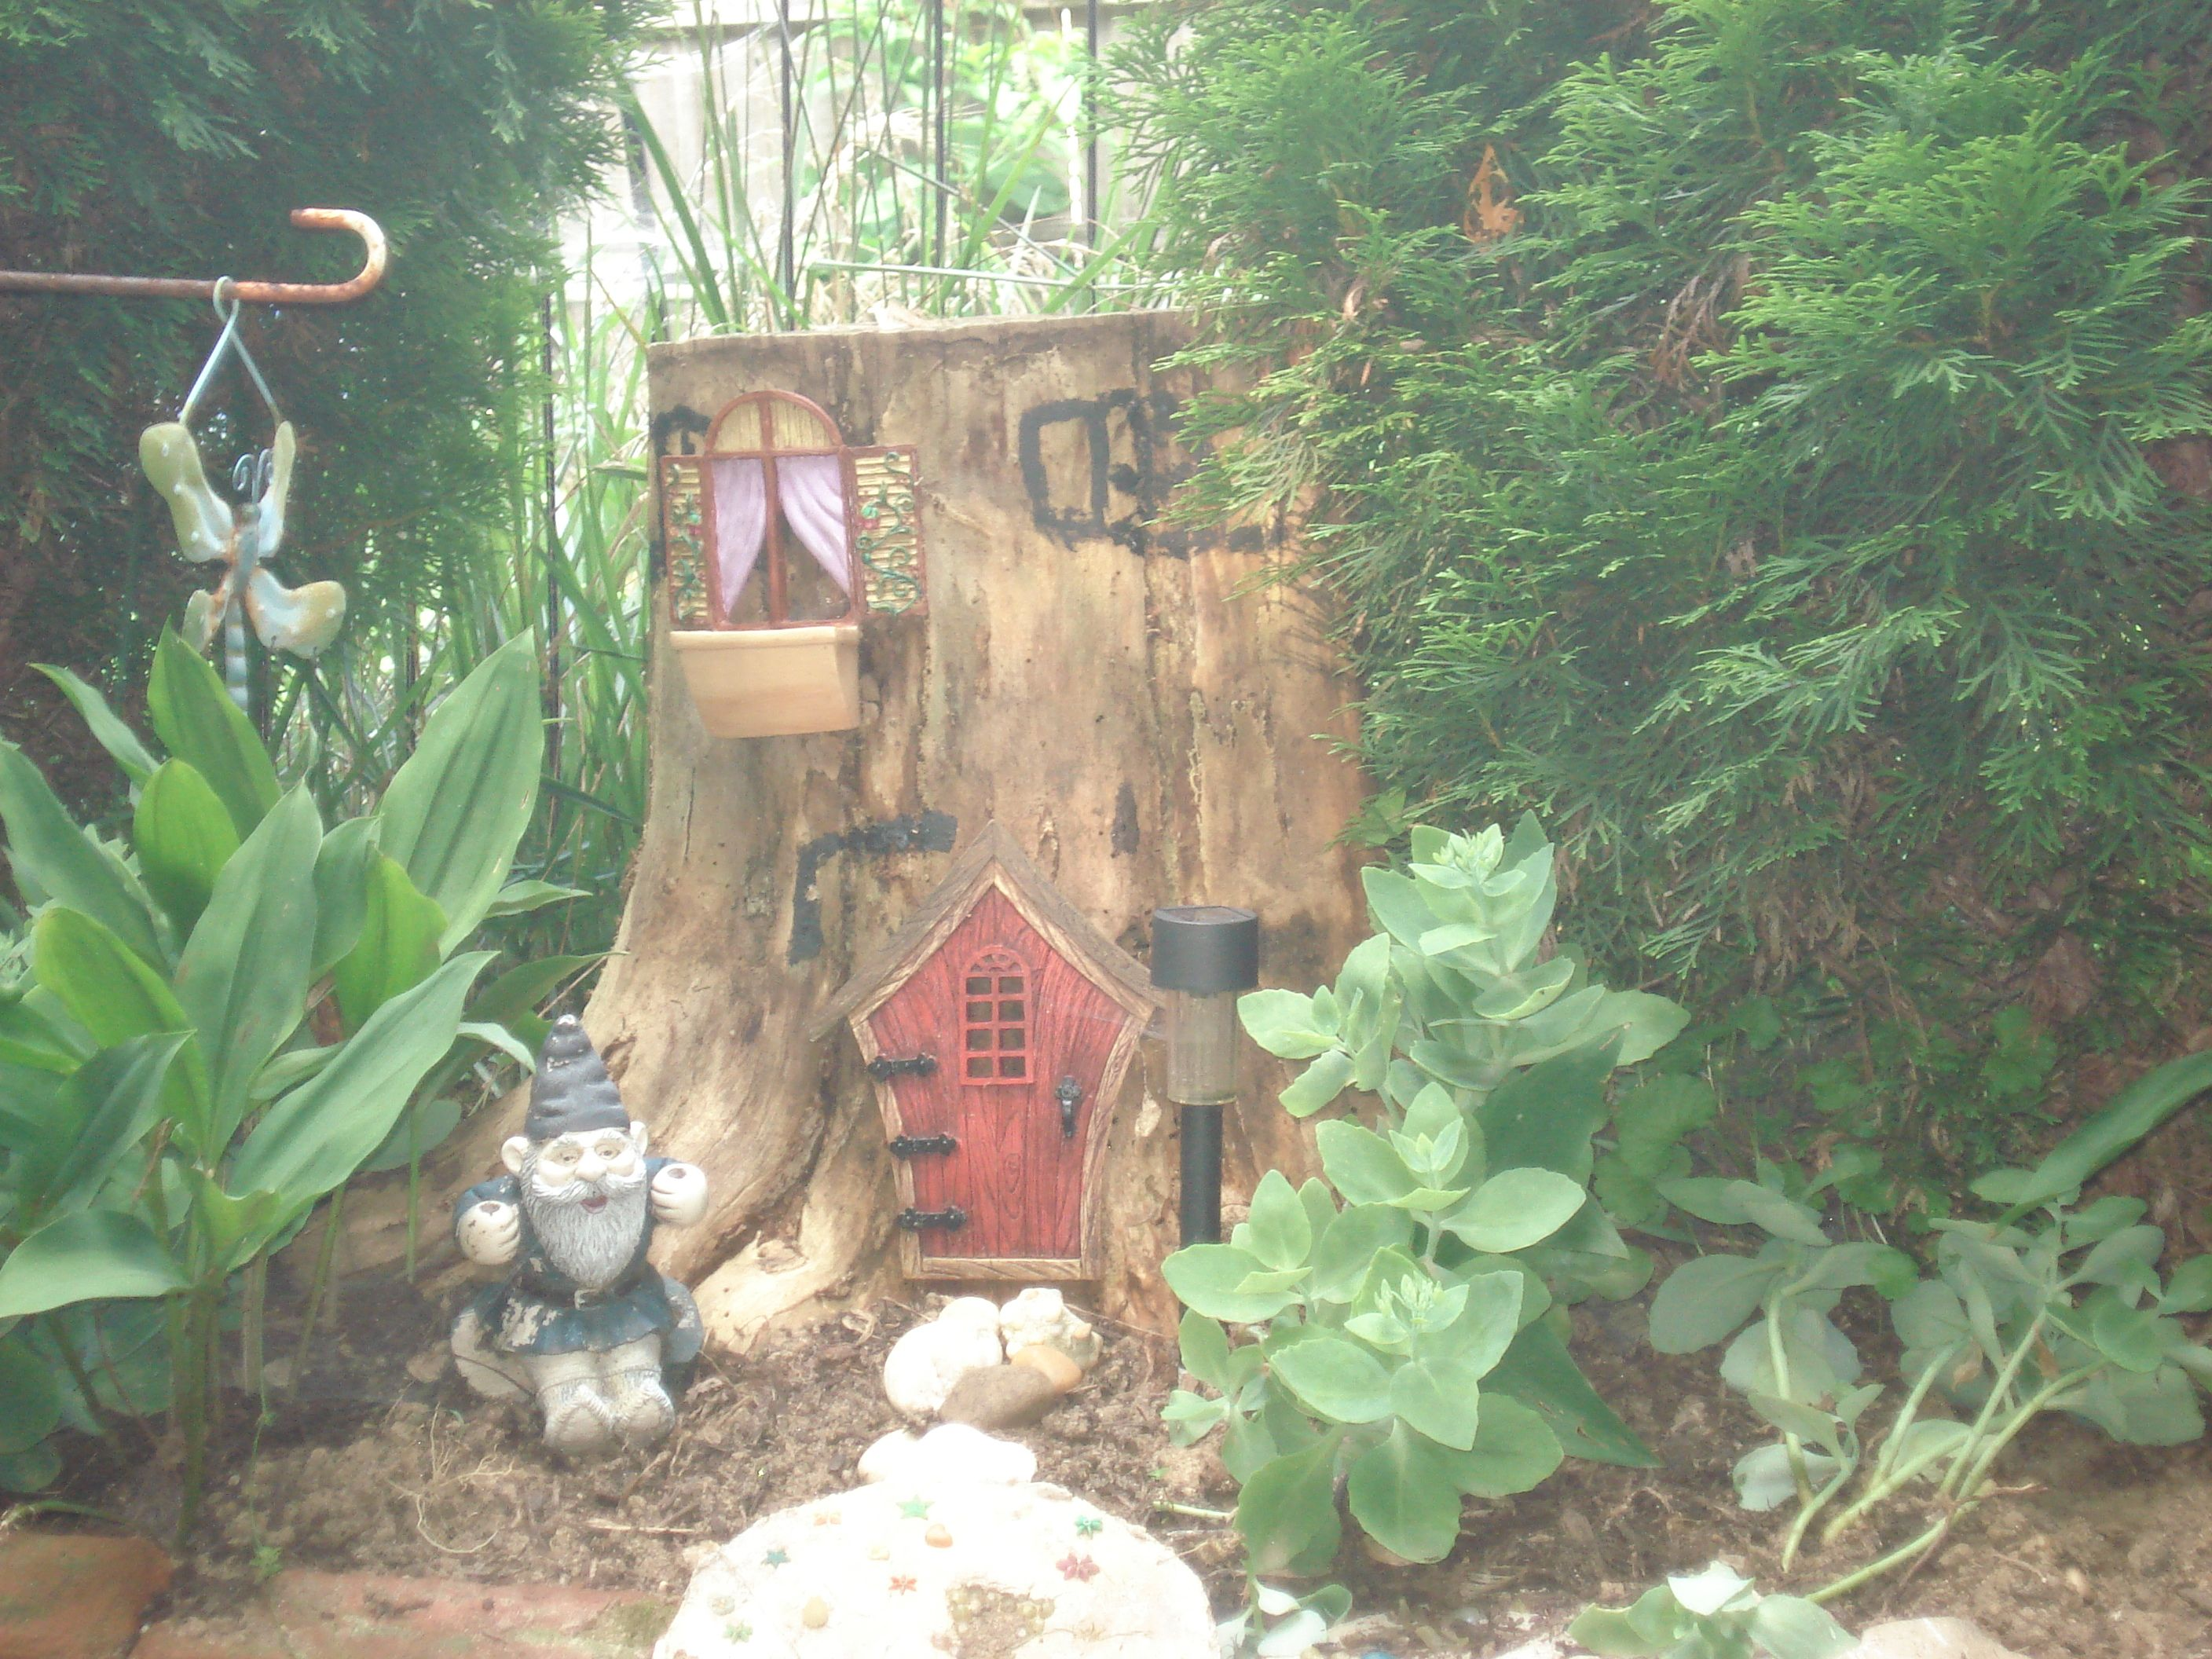 Gnome Tree Stump Home: Gnome House From A Tree Stump